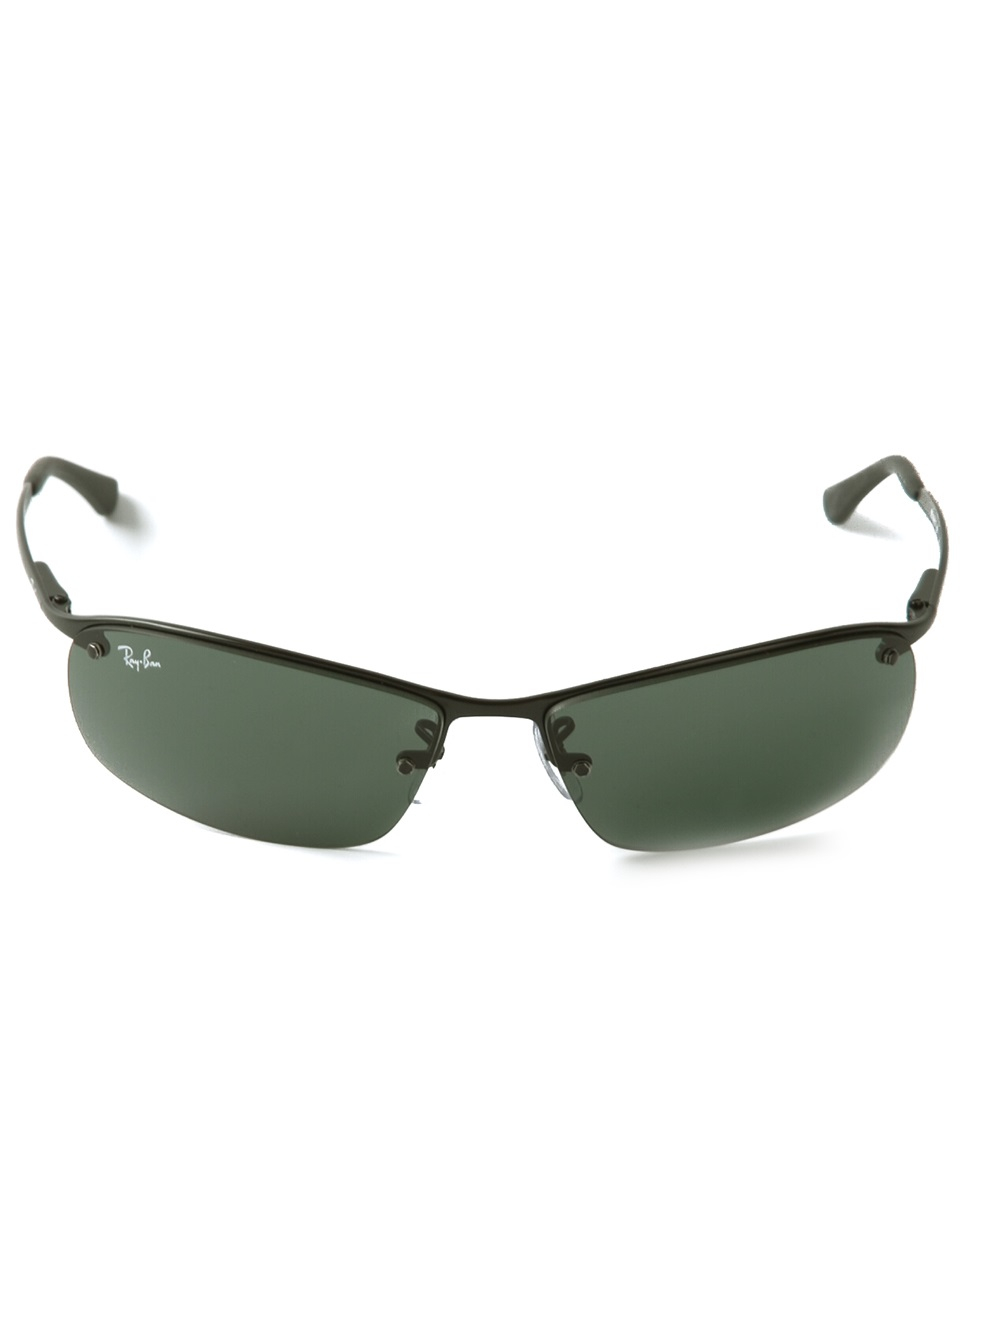 5f7b000b7a Gallery. Previously sold at  Farfetch · Men s Round Sunglasses Men s Ray Ban  ...